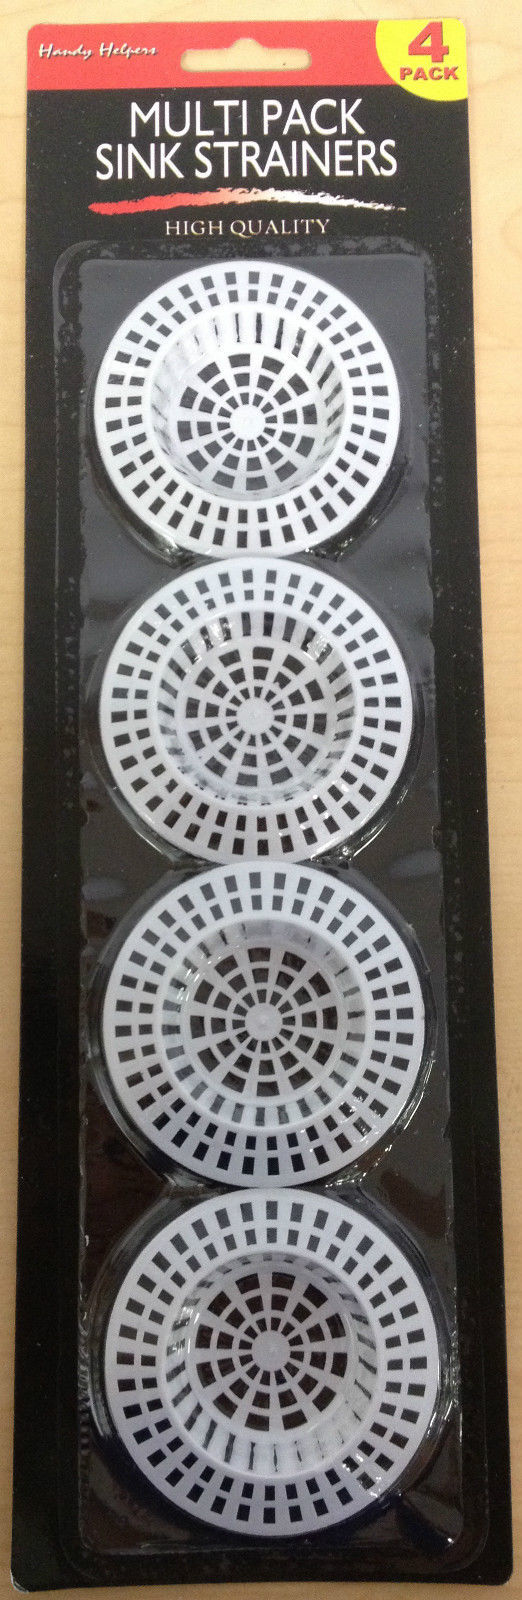 "Primary image for 4 Pack 2 3/4"" Plastic Sink Strainers for Bathtubs and Sinks - Prevents Clogs"